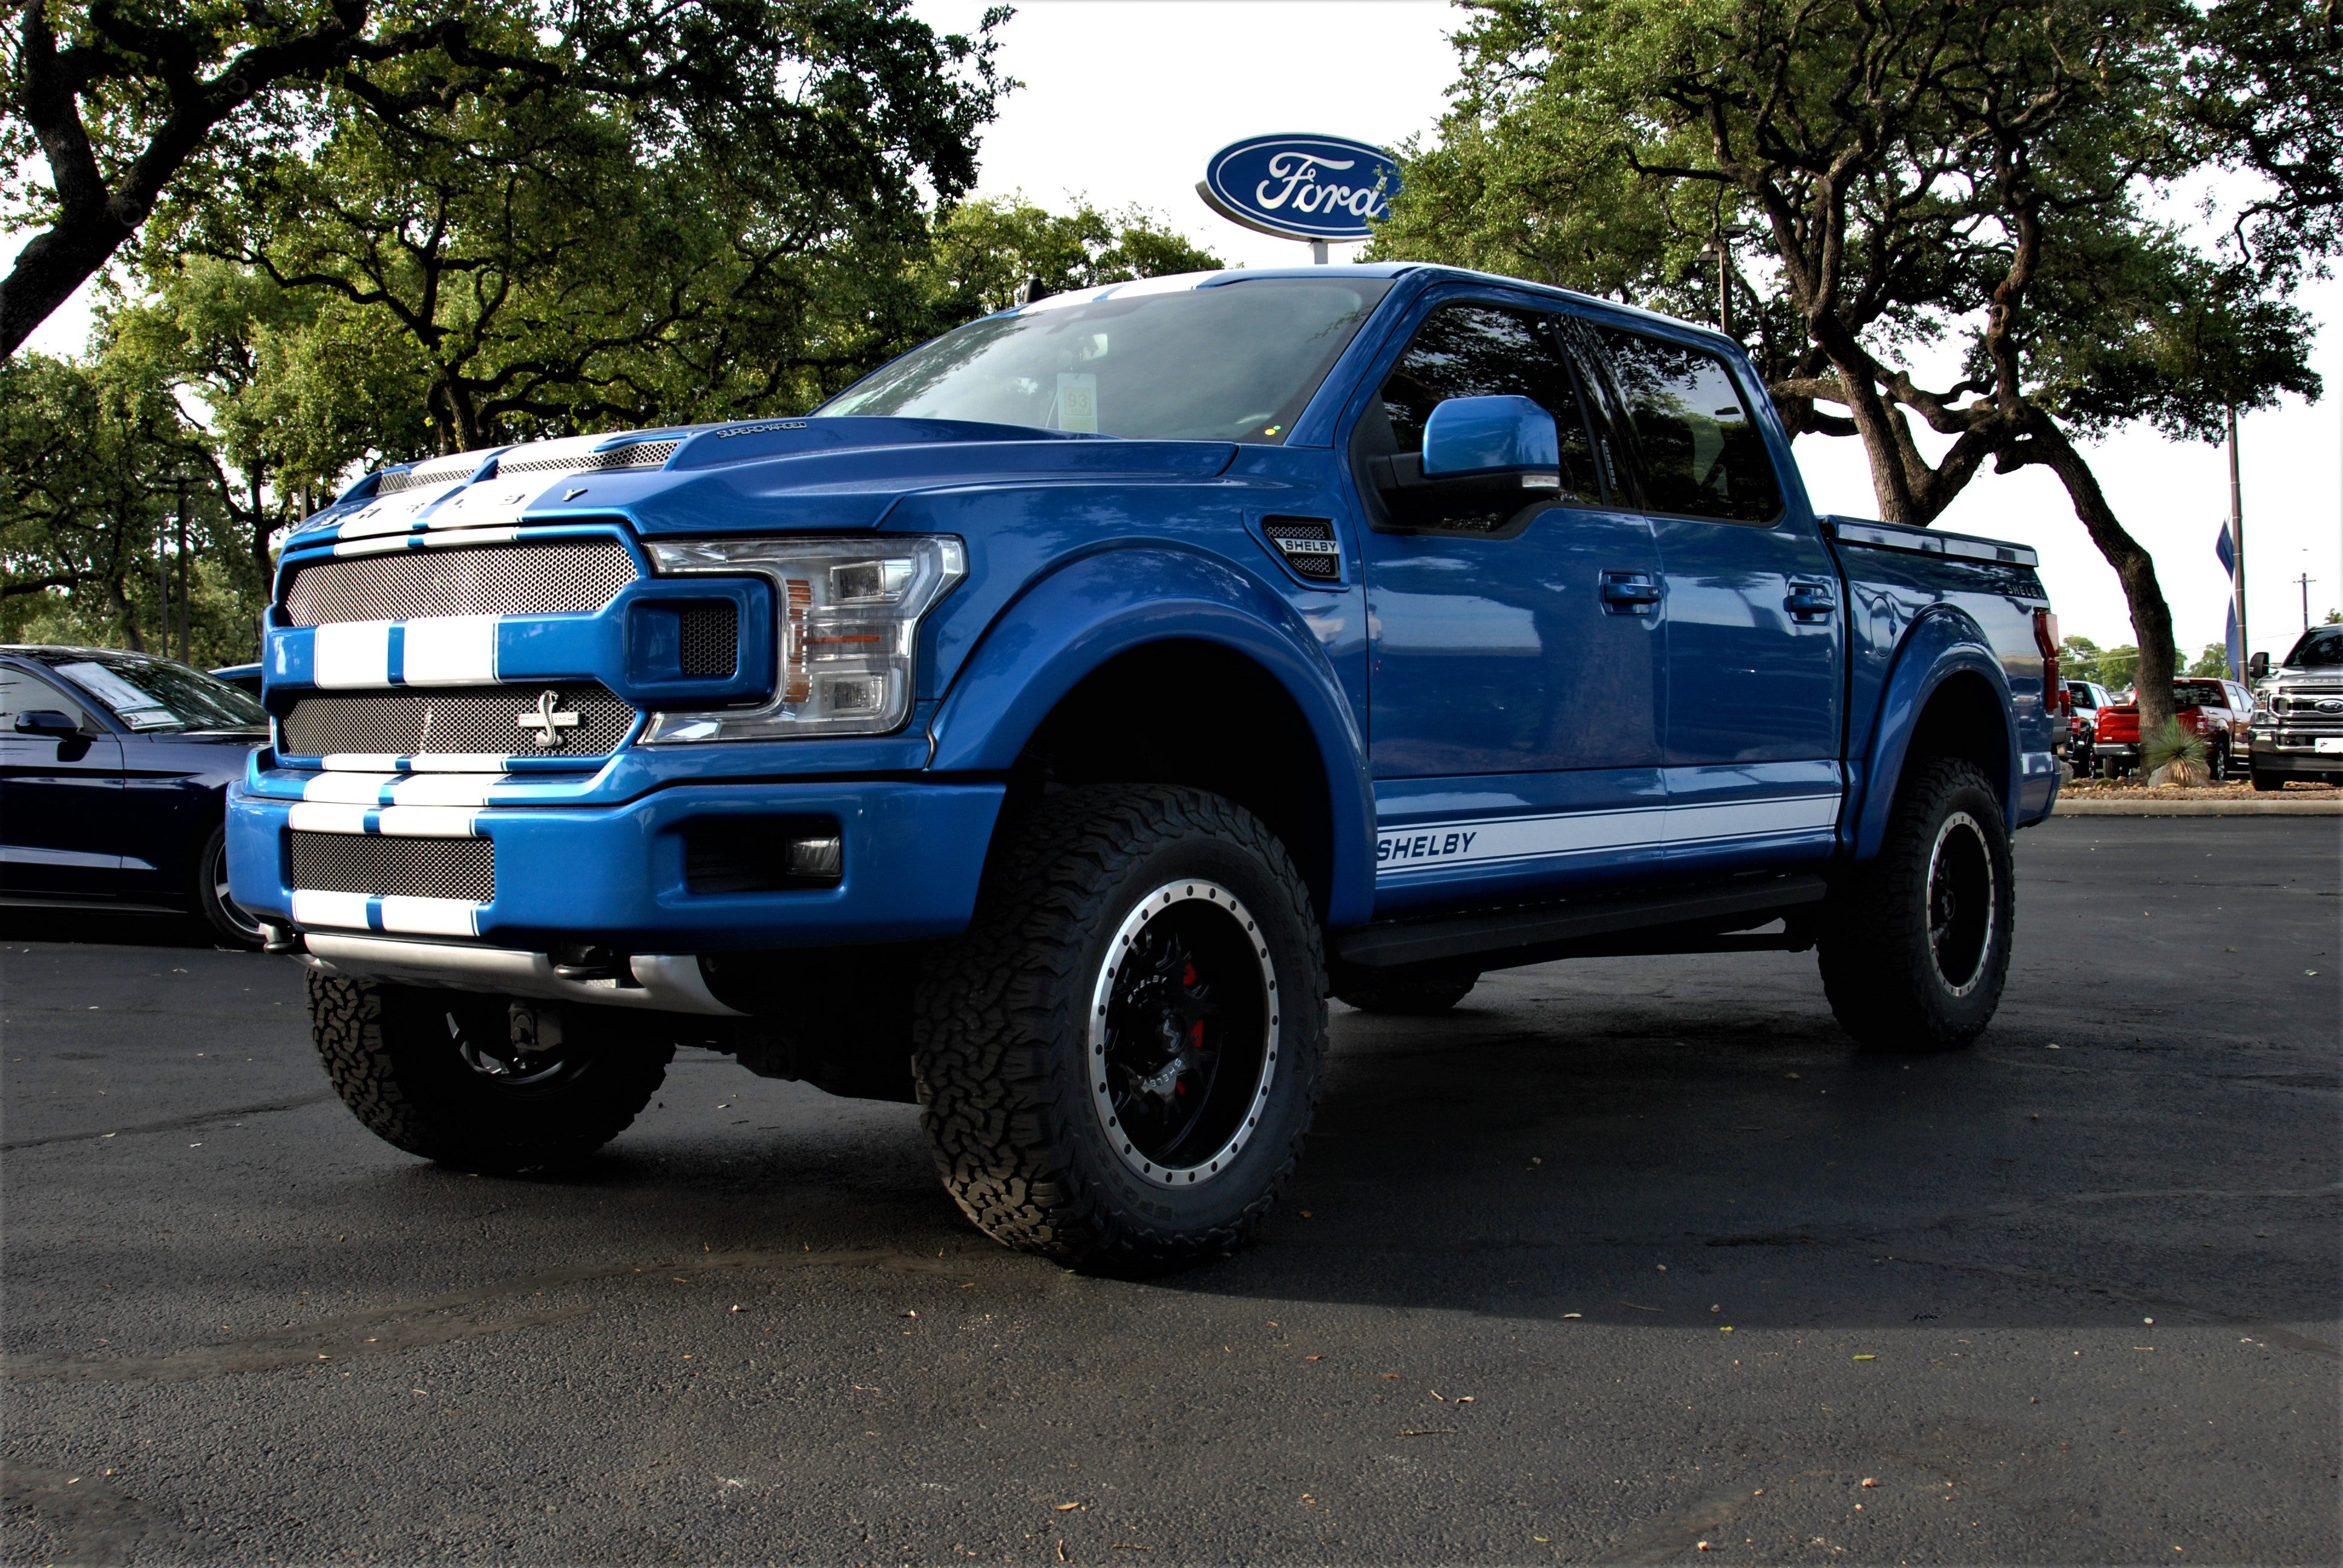 Custom Shelby Vehicles For Sale At Ford Of Boerne